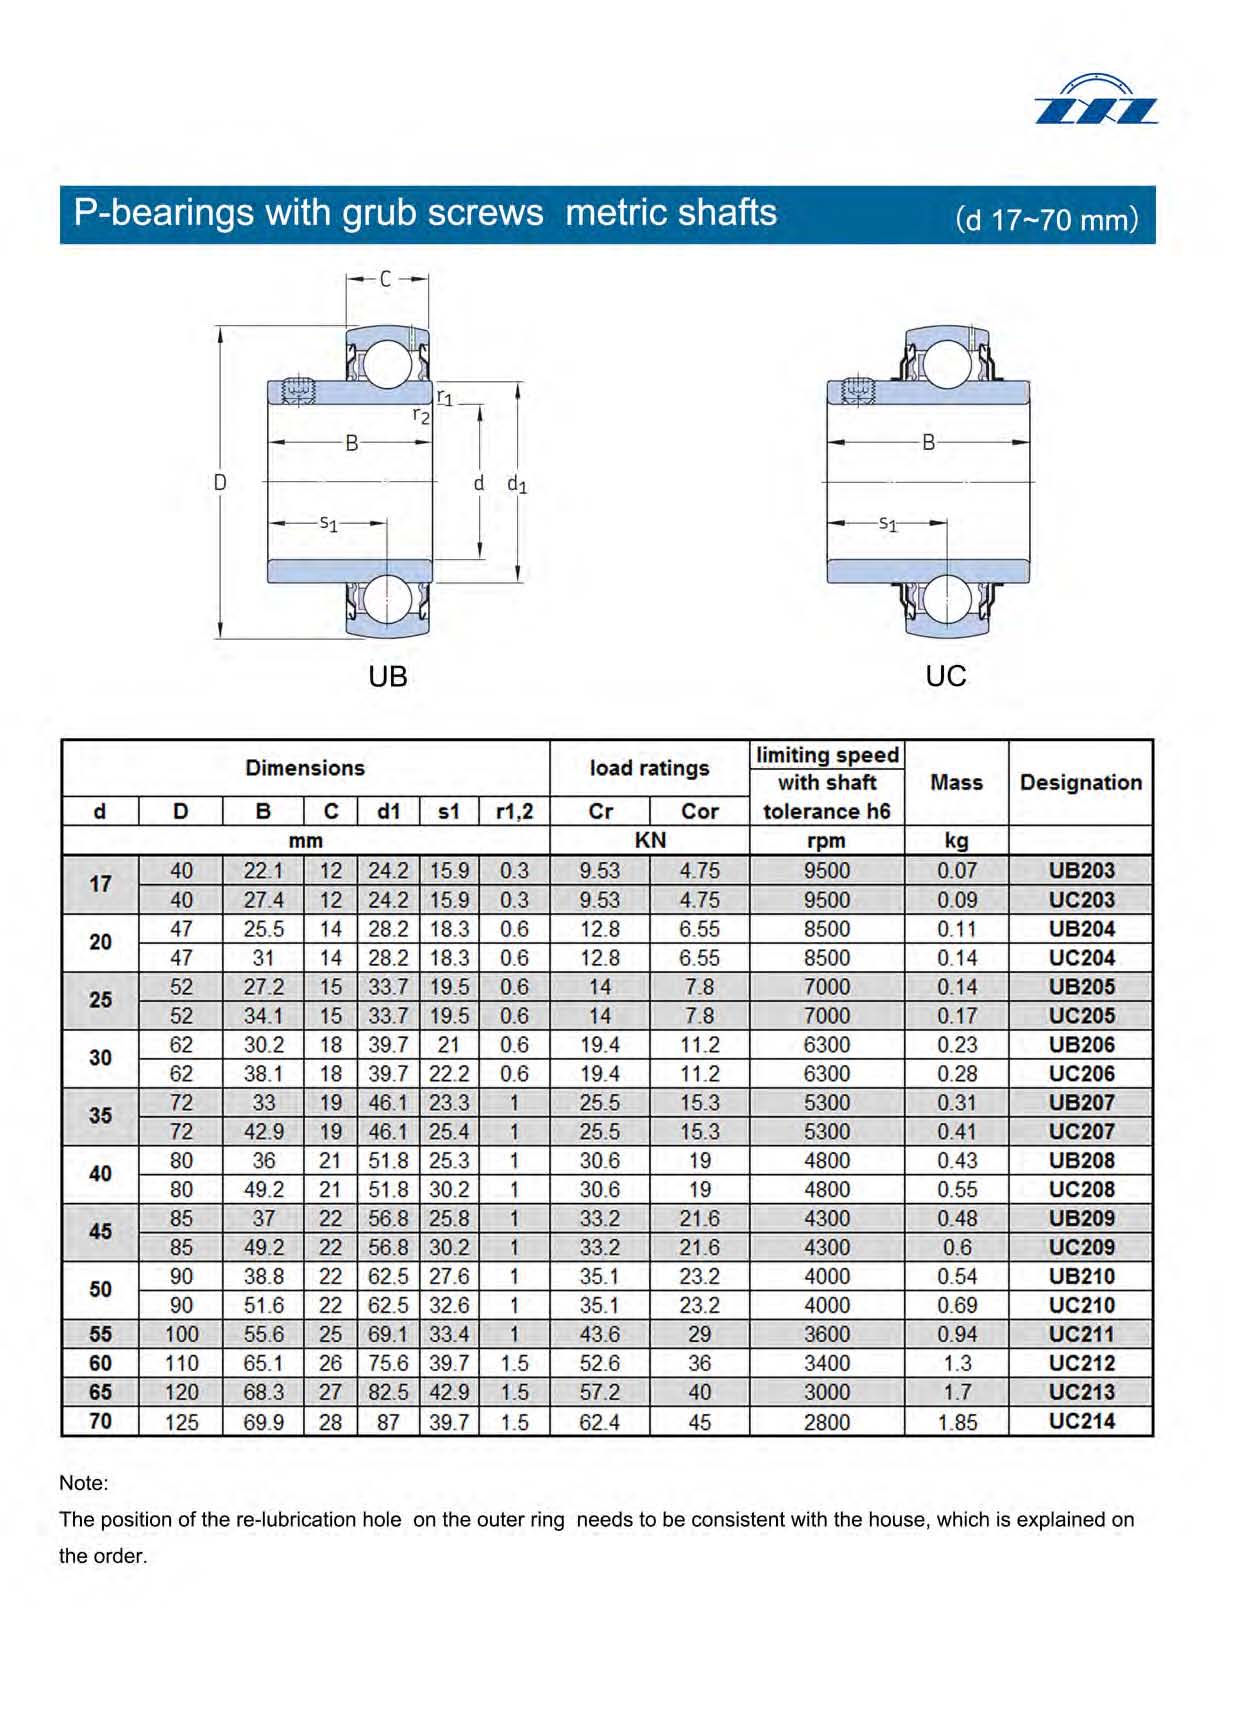 P-bearings with grub screws metric shafts